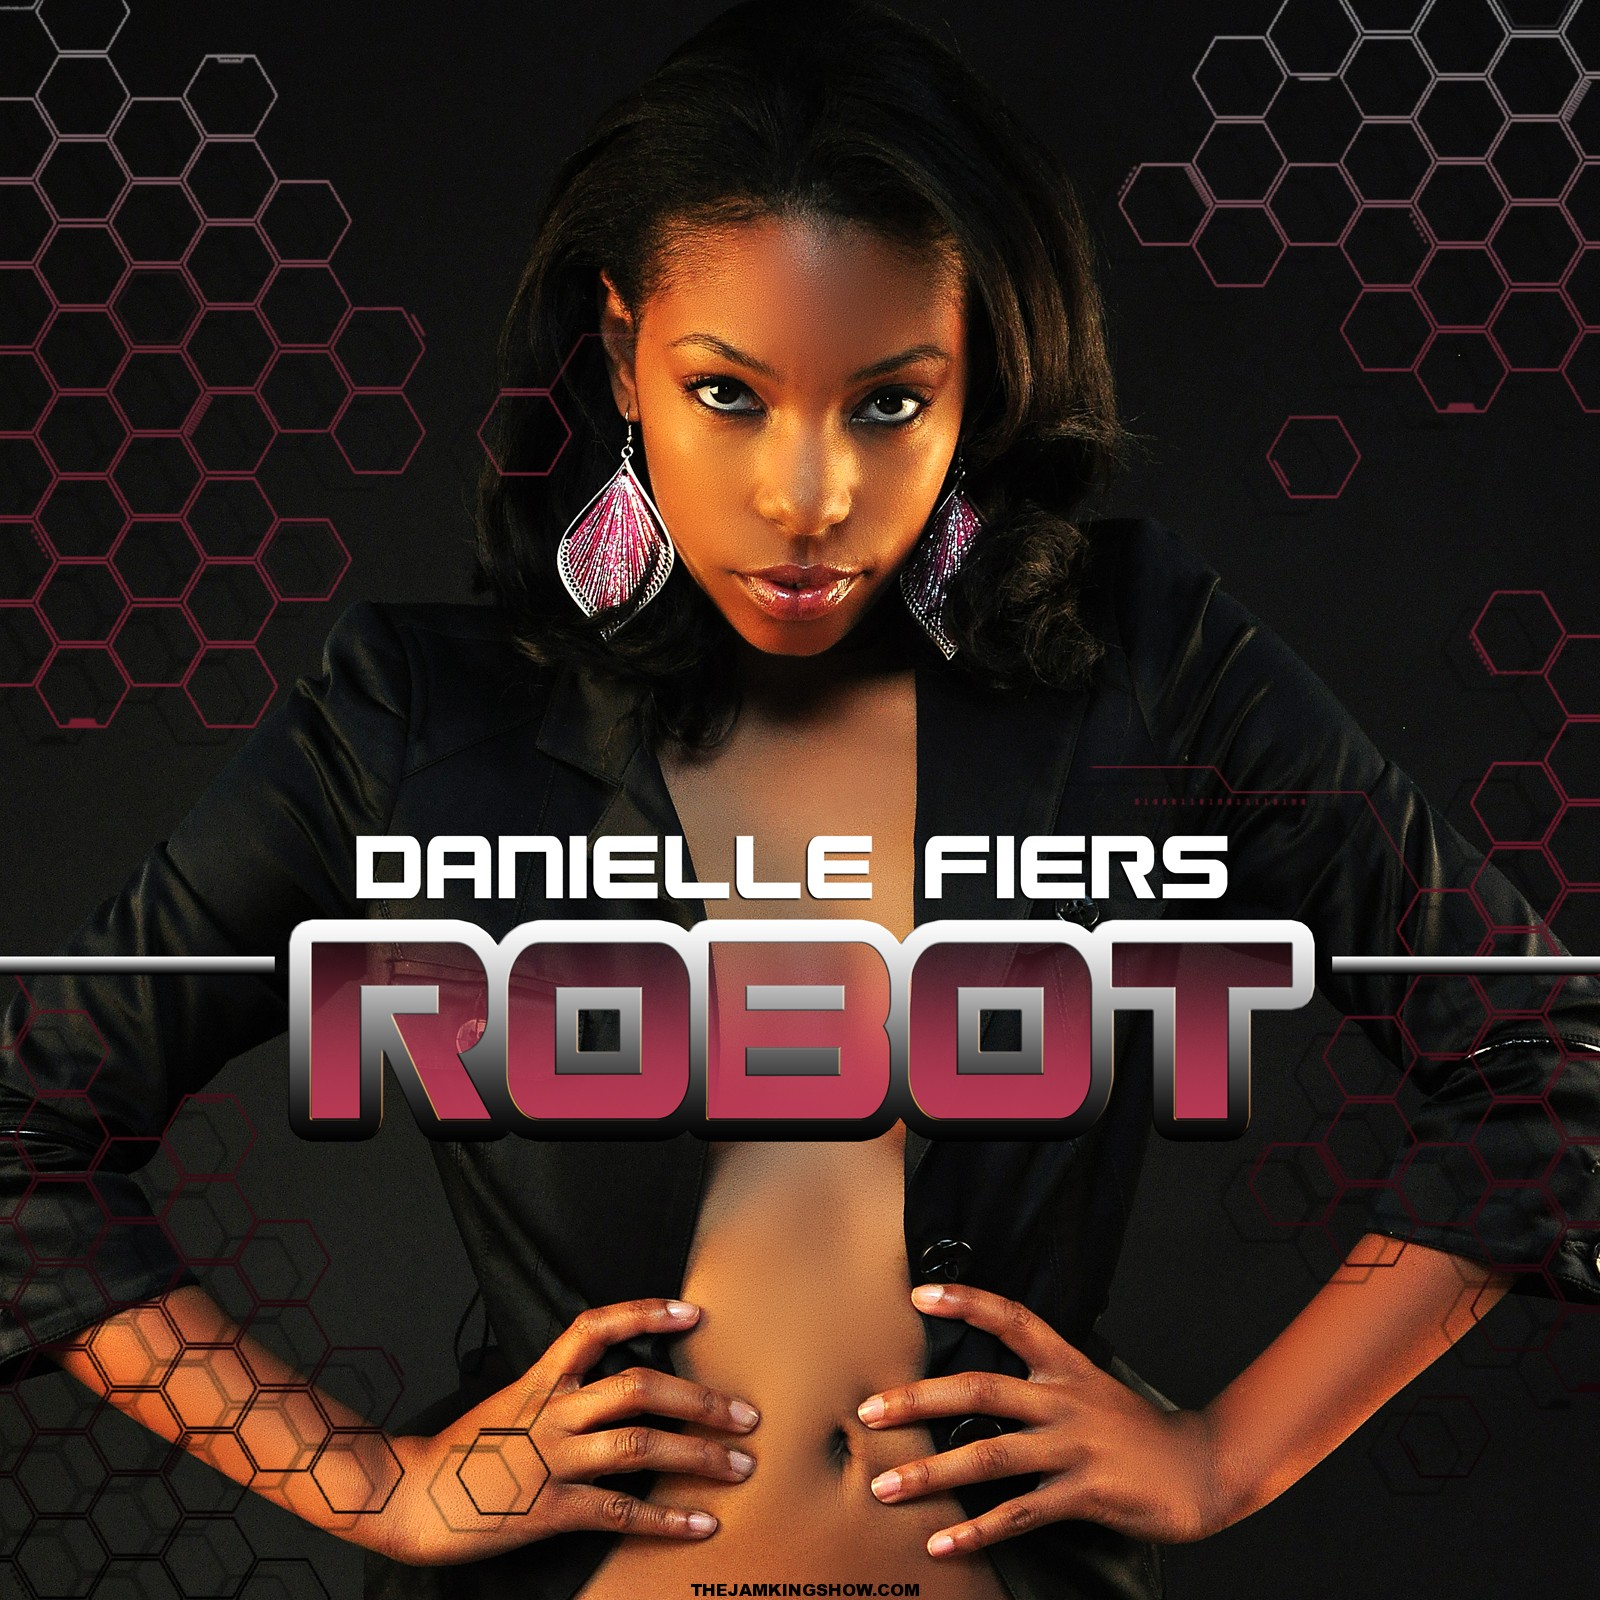 NEW ARTIST ON DECK DANIELLE FIERS!! LIGHTING IT UP